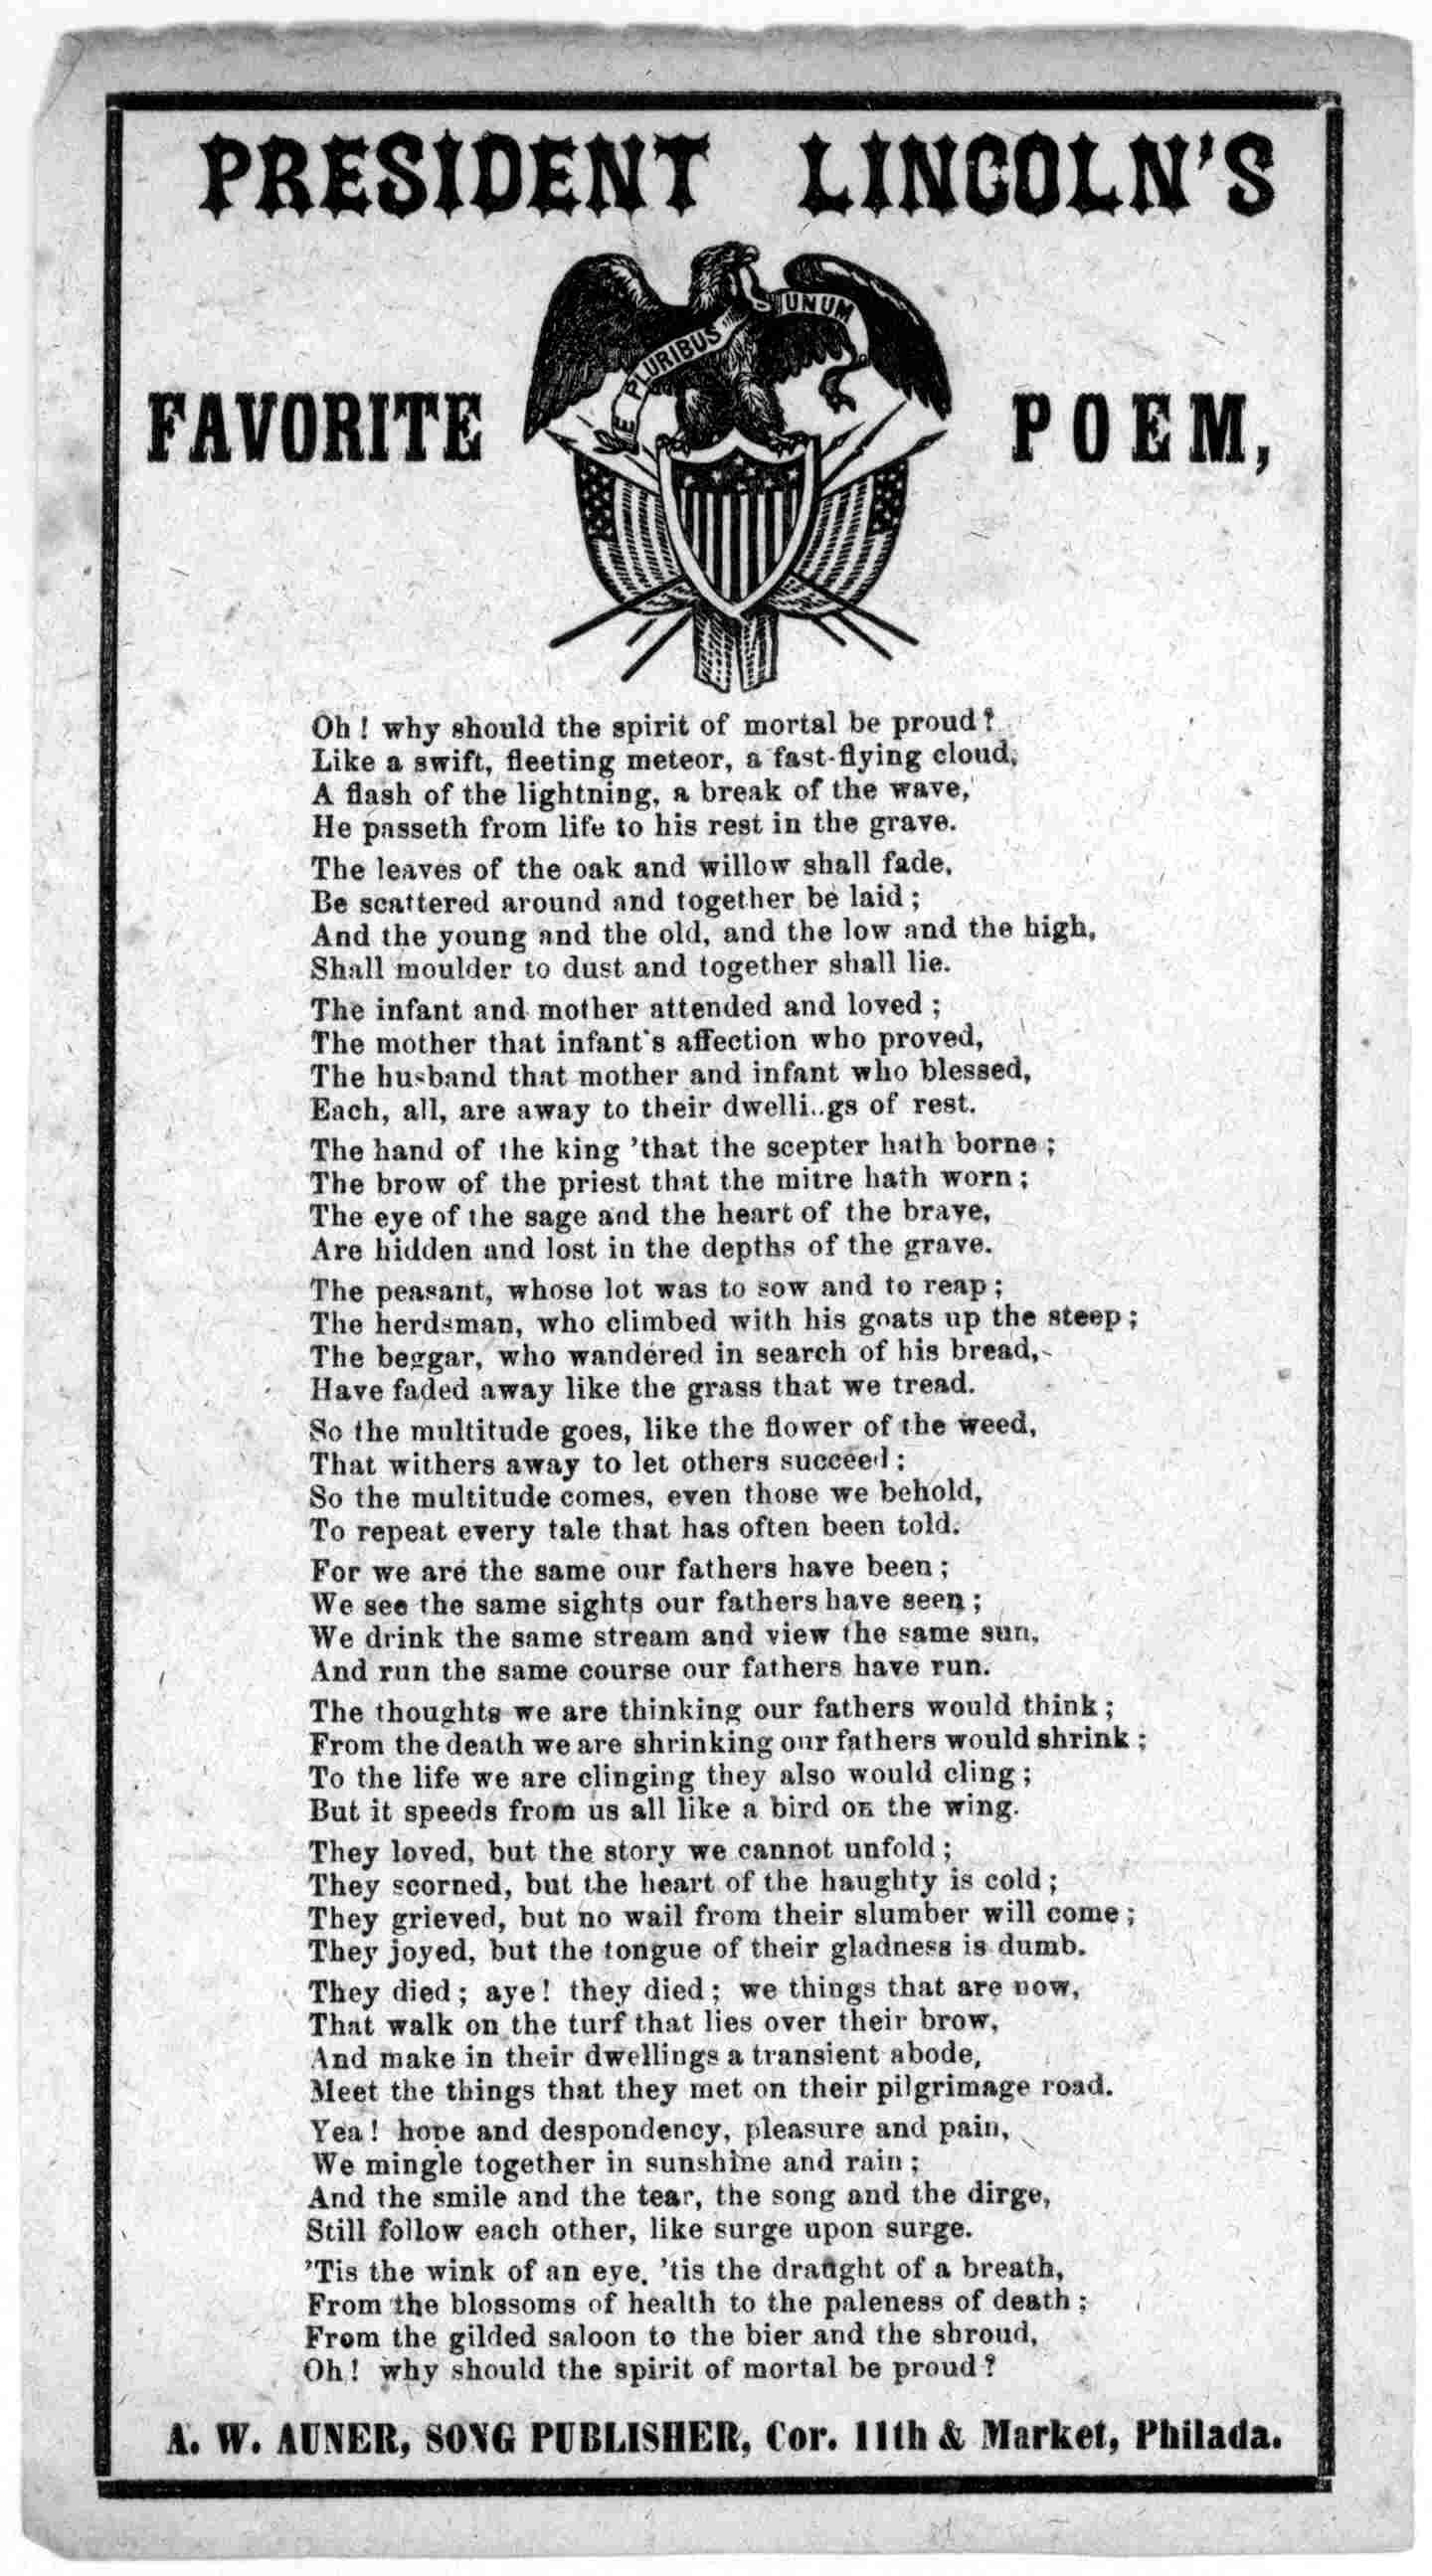 A printing of what is called President Lincoln's favorite poem.